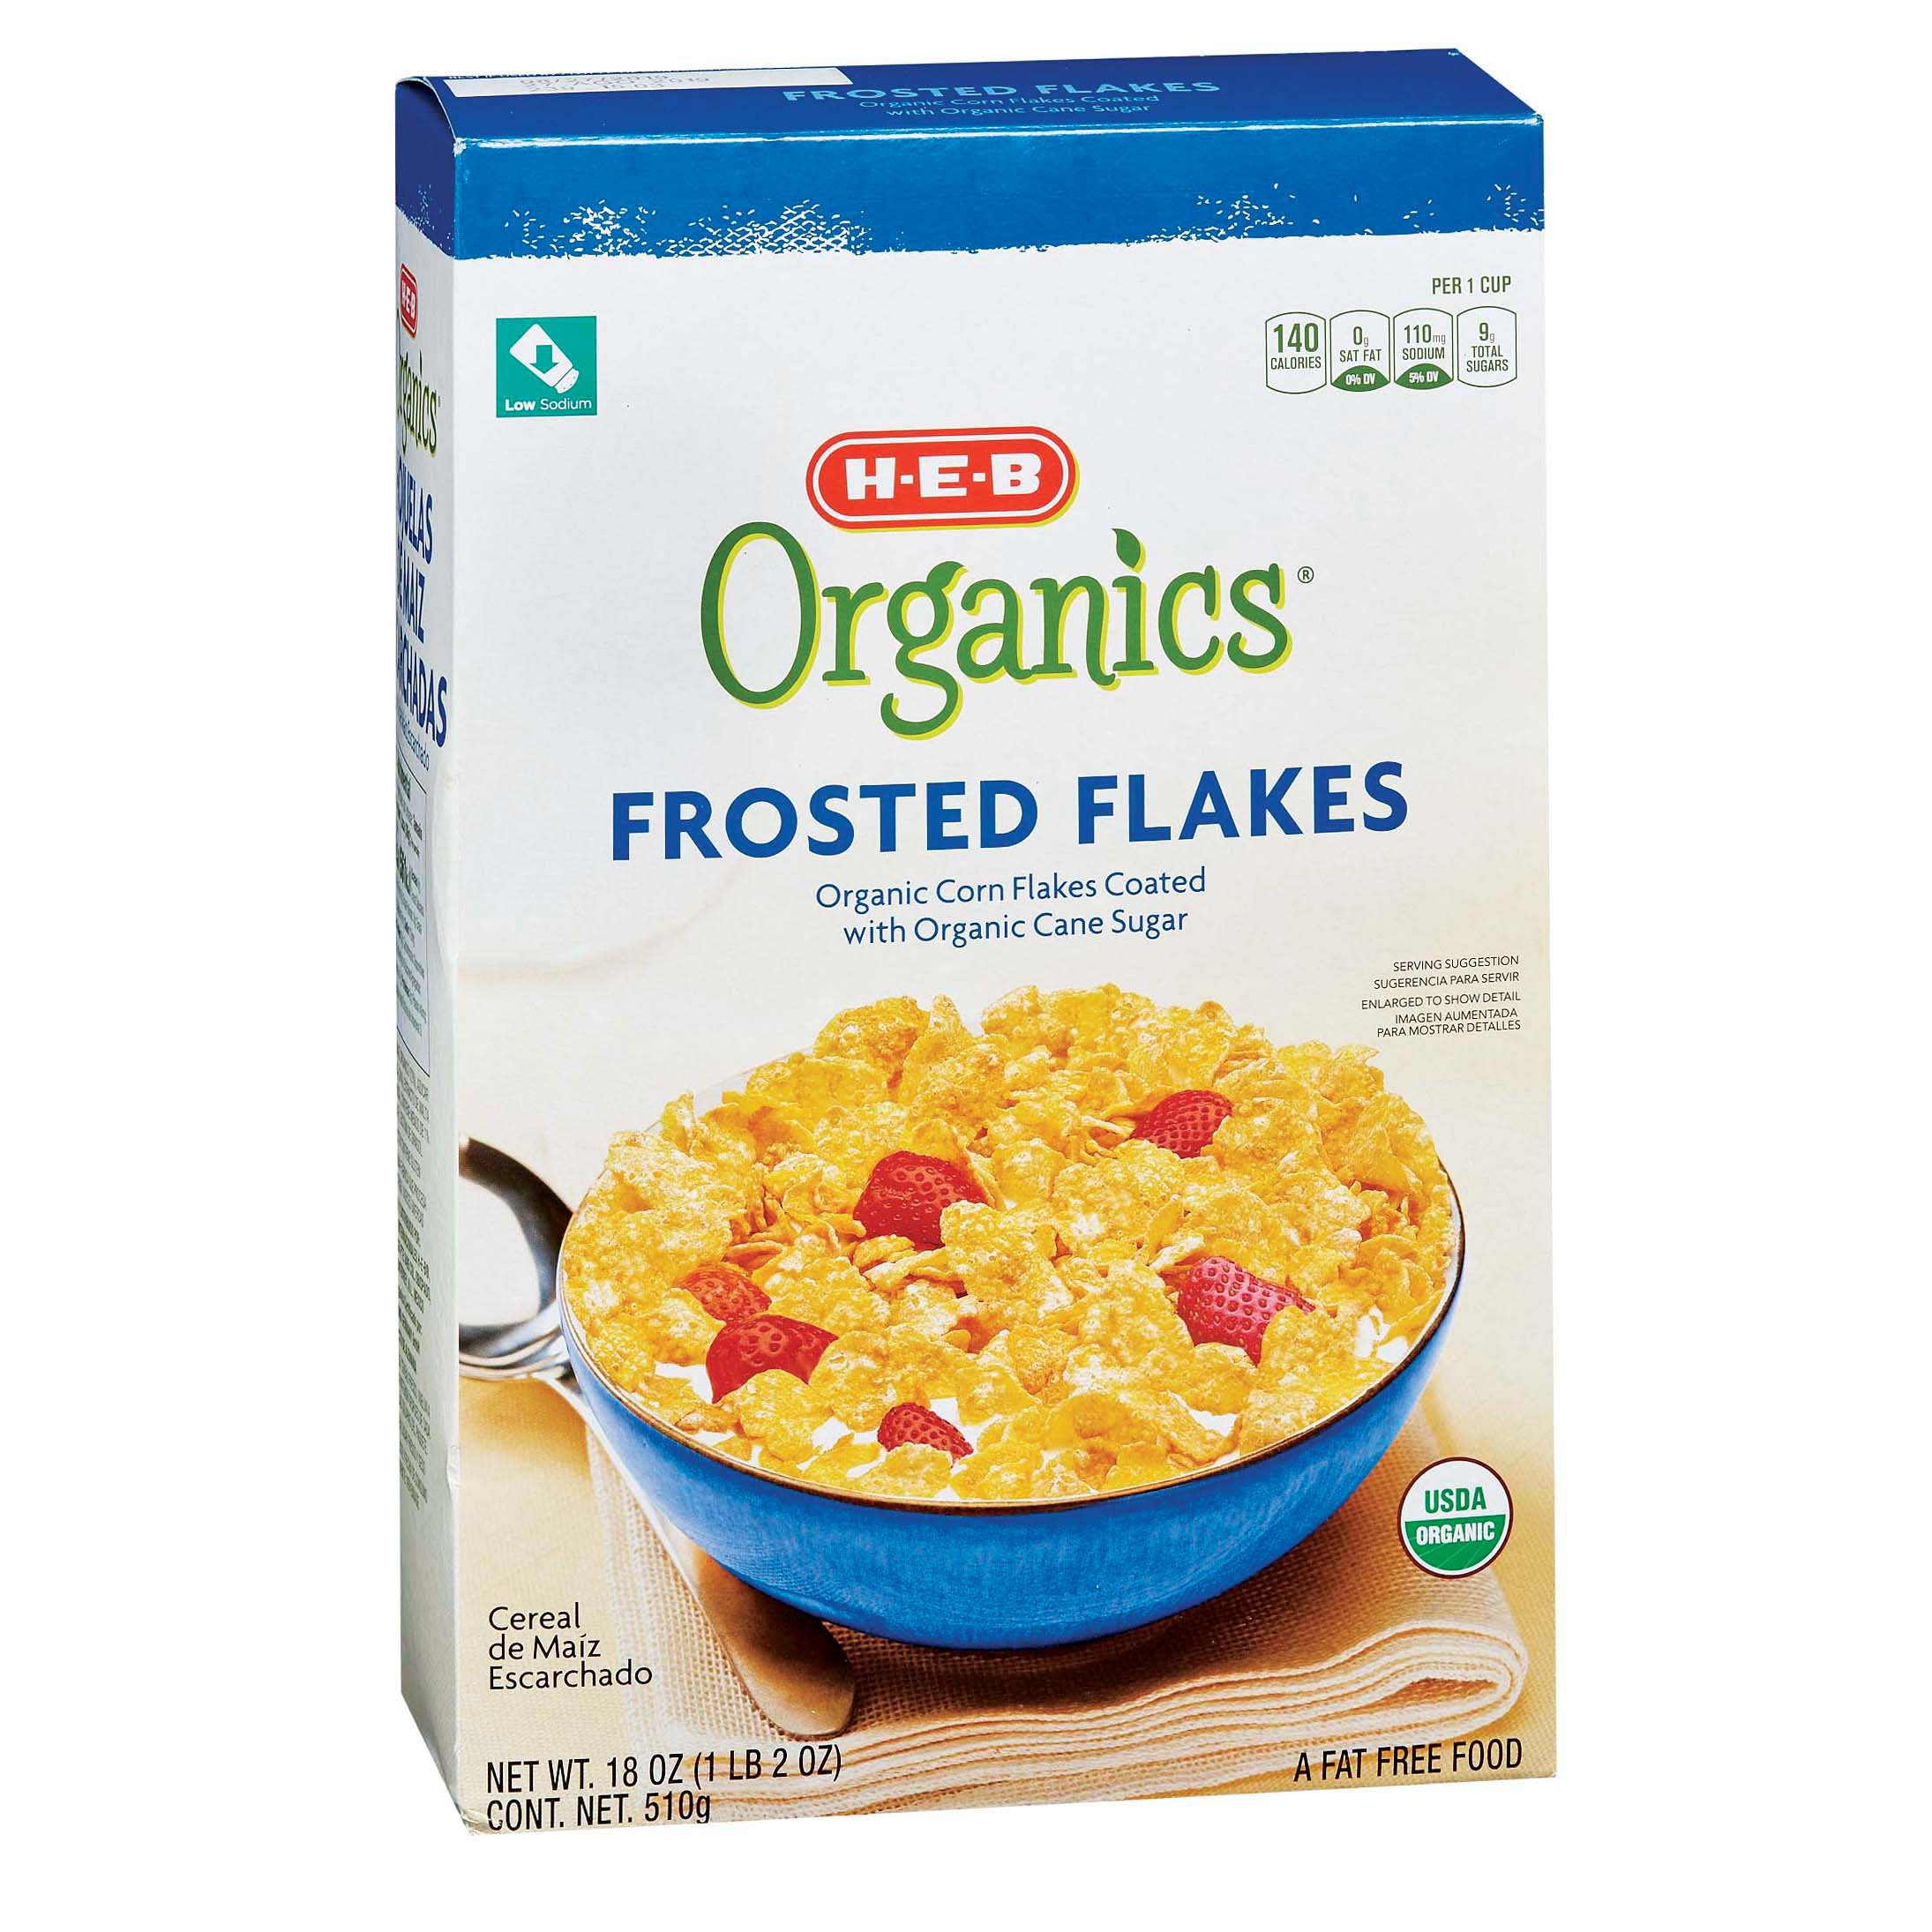 H E B Organics Frosted Flakes Shop Cereal At H E B